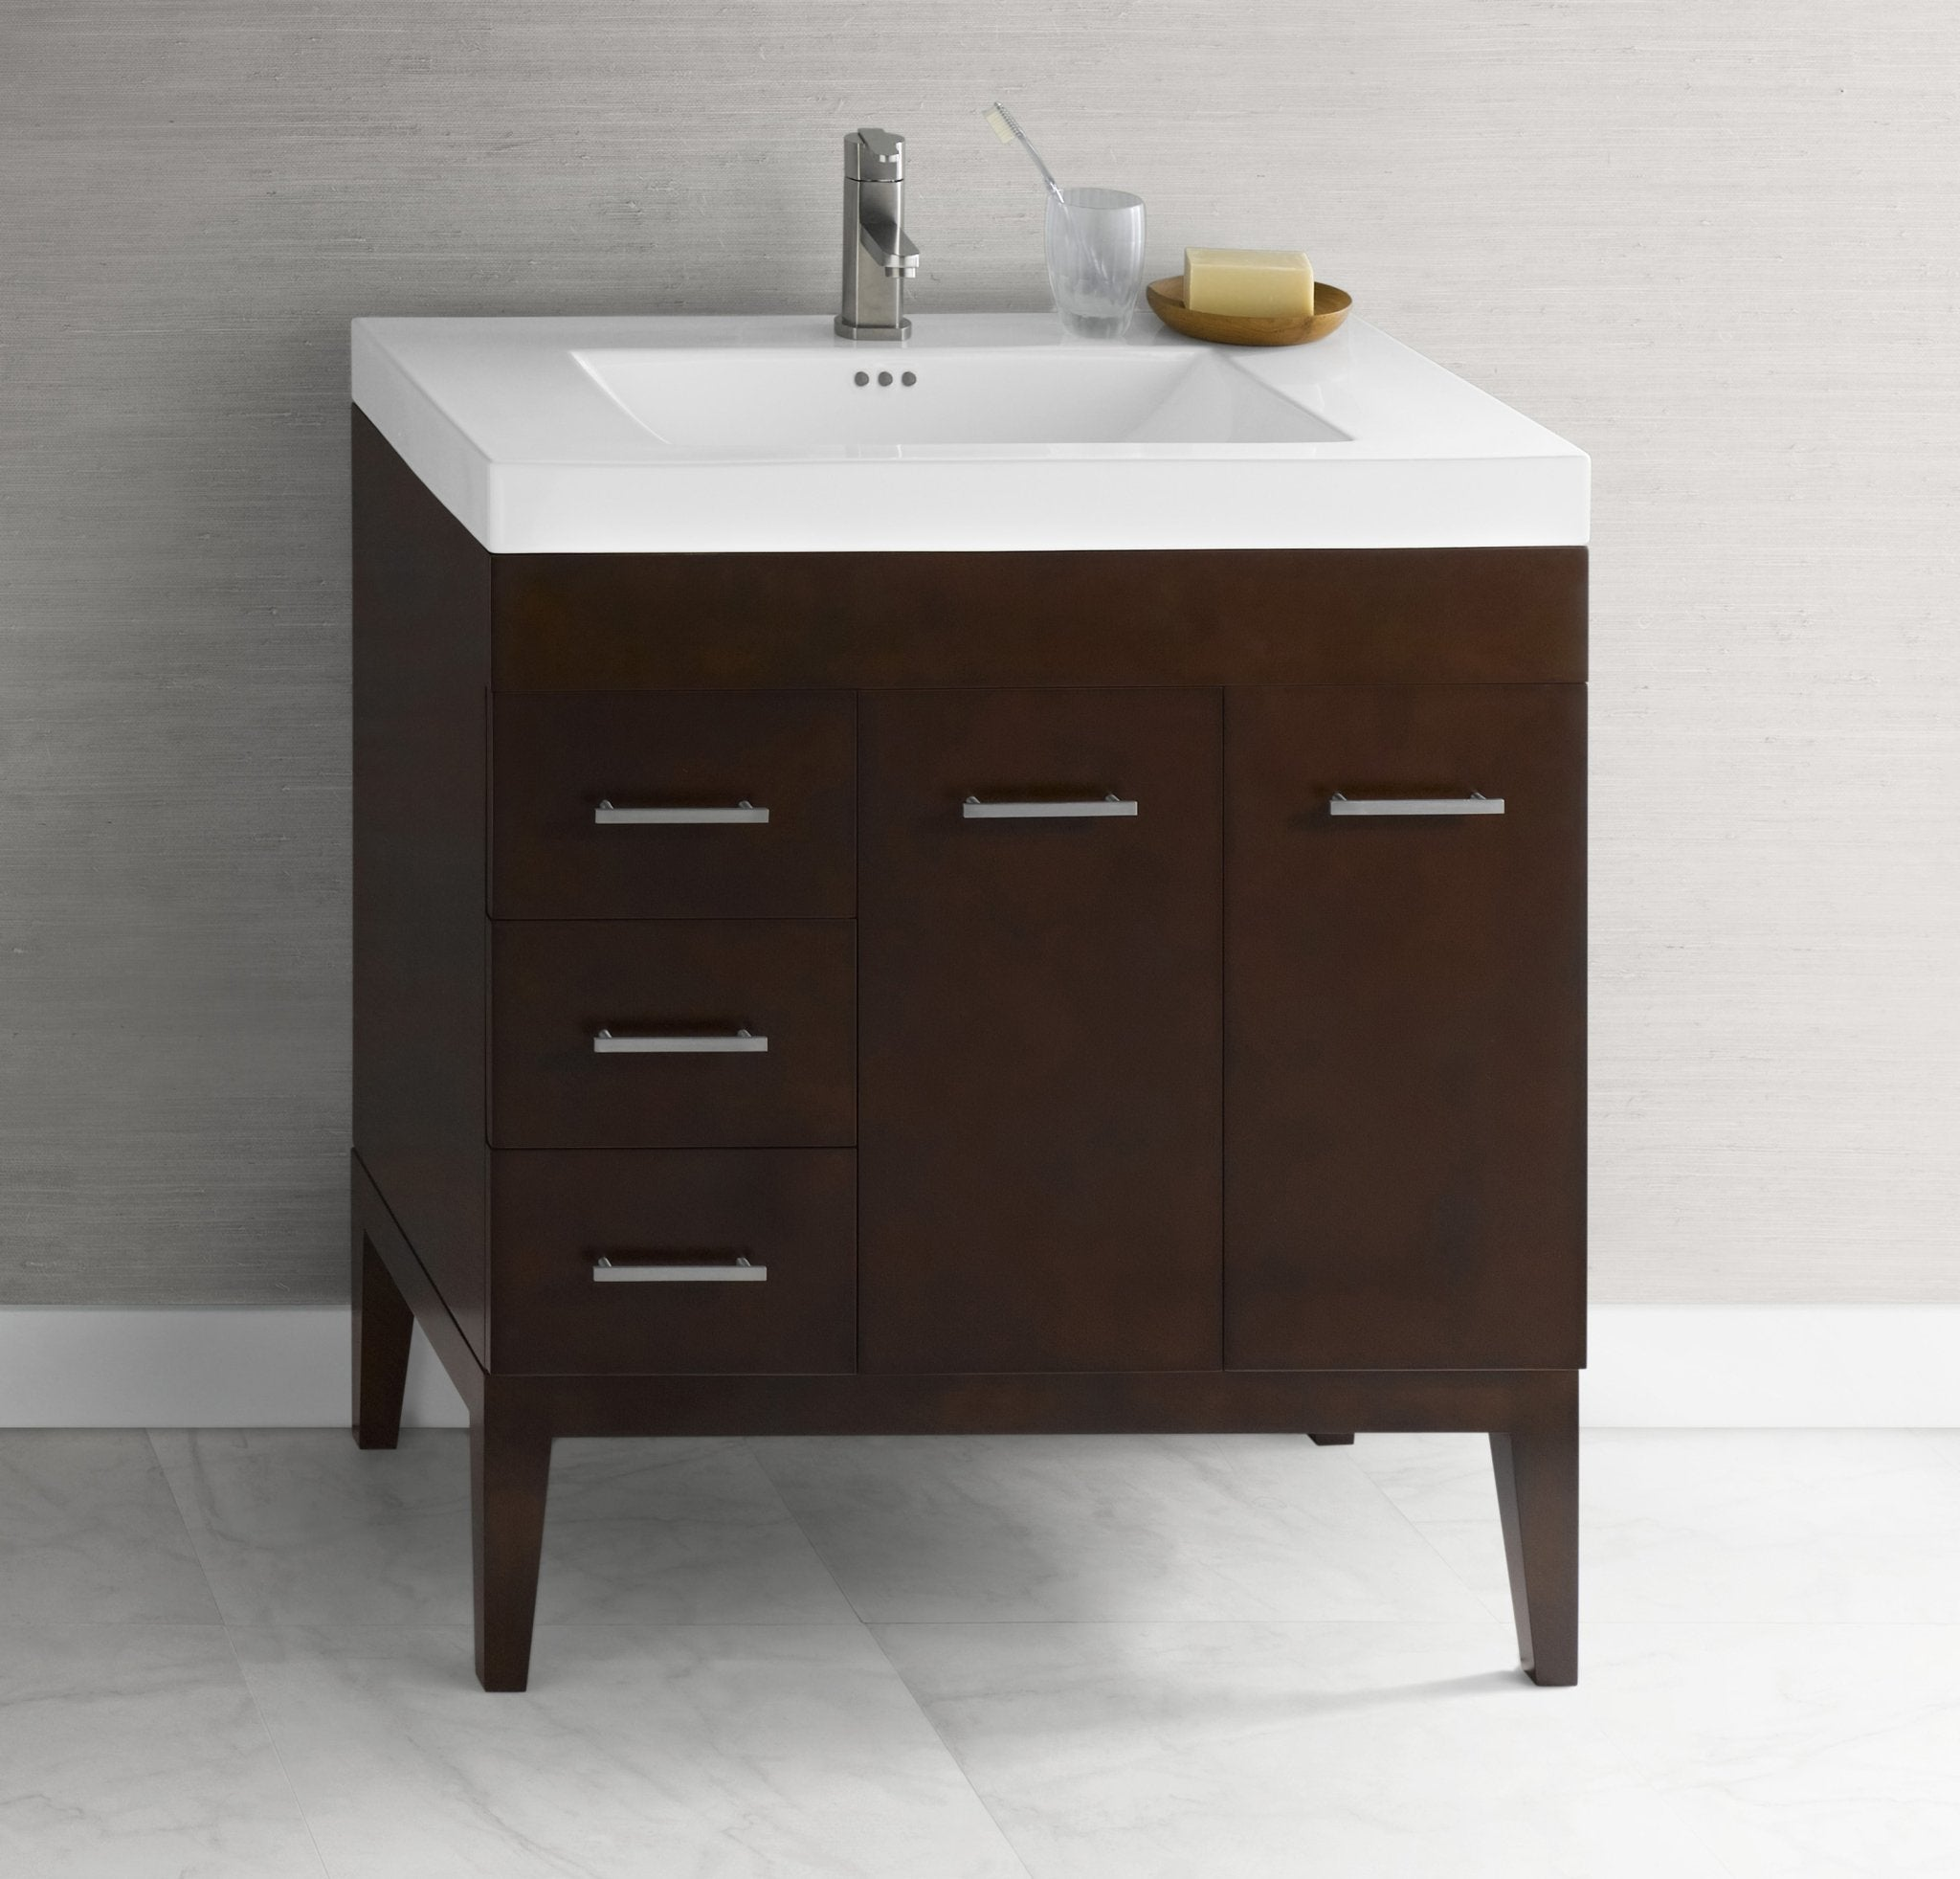 painted style wall features espresso concept contemporary upper in vanity glass pretty two unusual dark and cabinet vanities built design robern wooden of with this bathroom imposing cabinets fetching laminate pictures mount